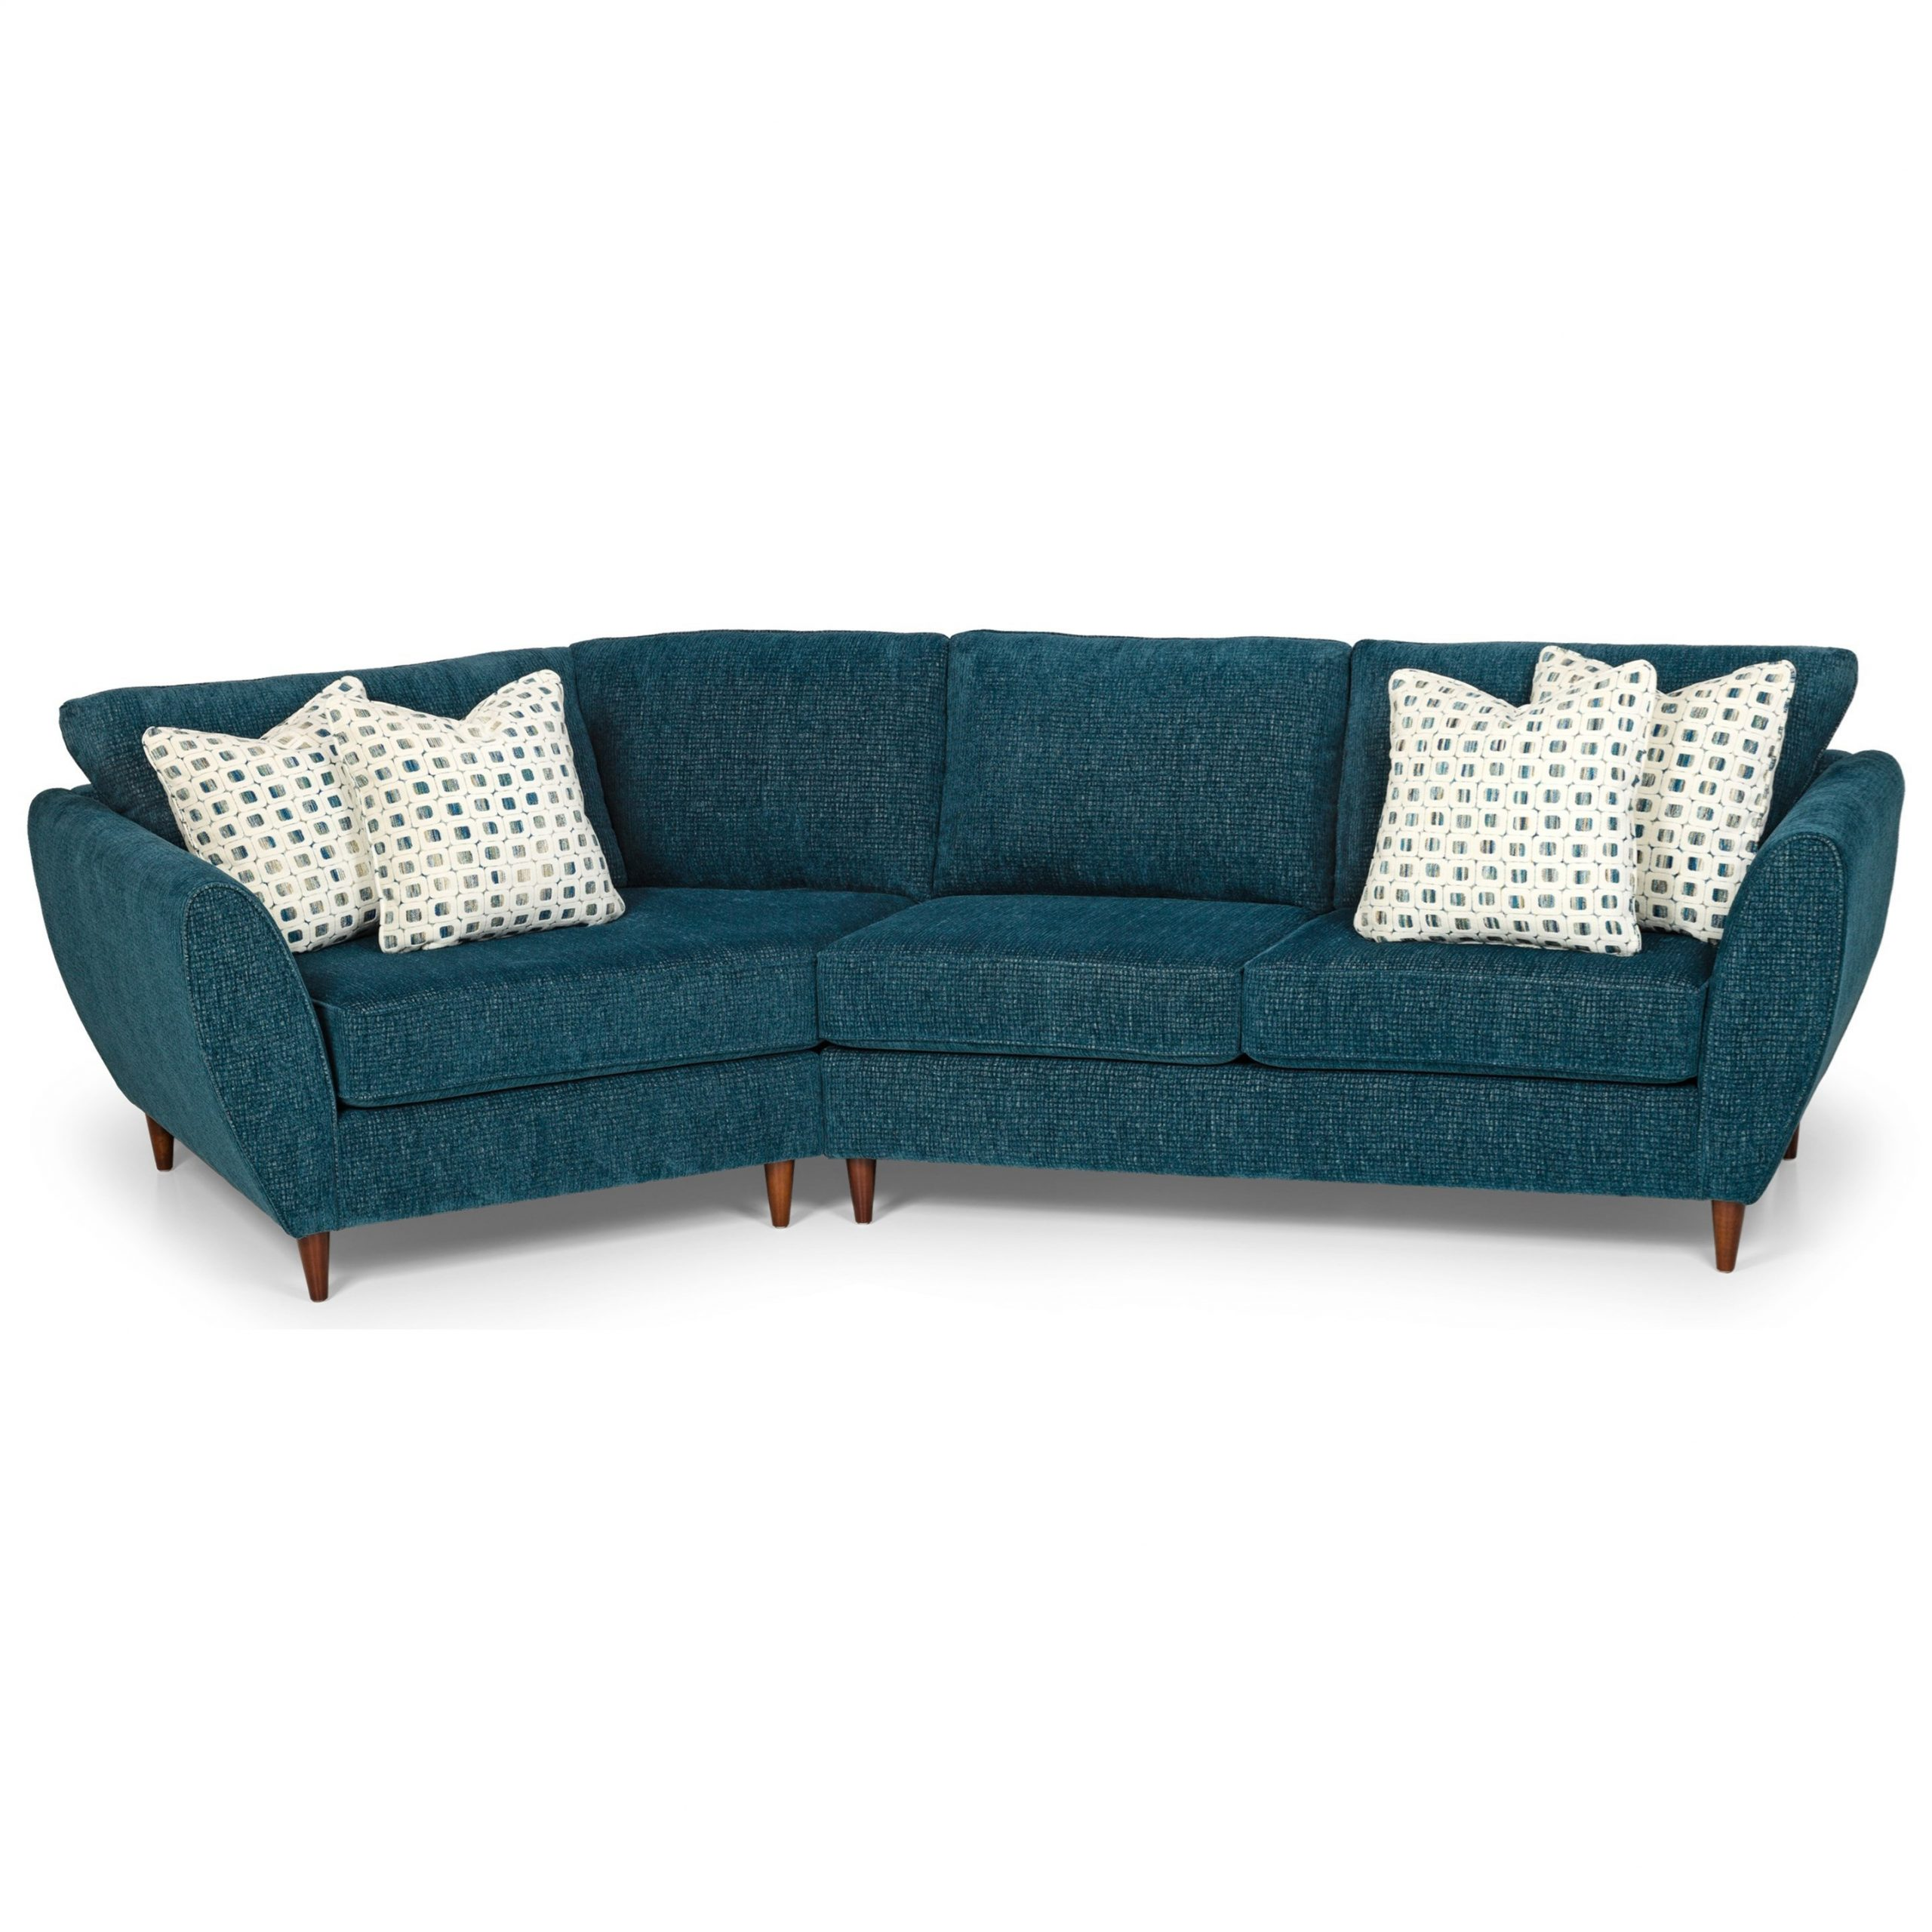 Stanton 473 Mid Century Modern 2 Piece Sectional Sofa With Regarding Florence Mid Century Modern Left Sectional Sofas (View 2 of 15)